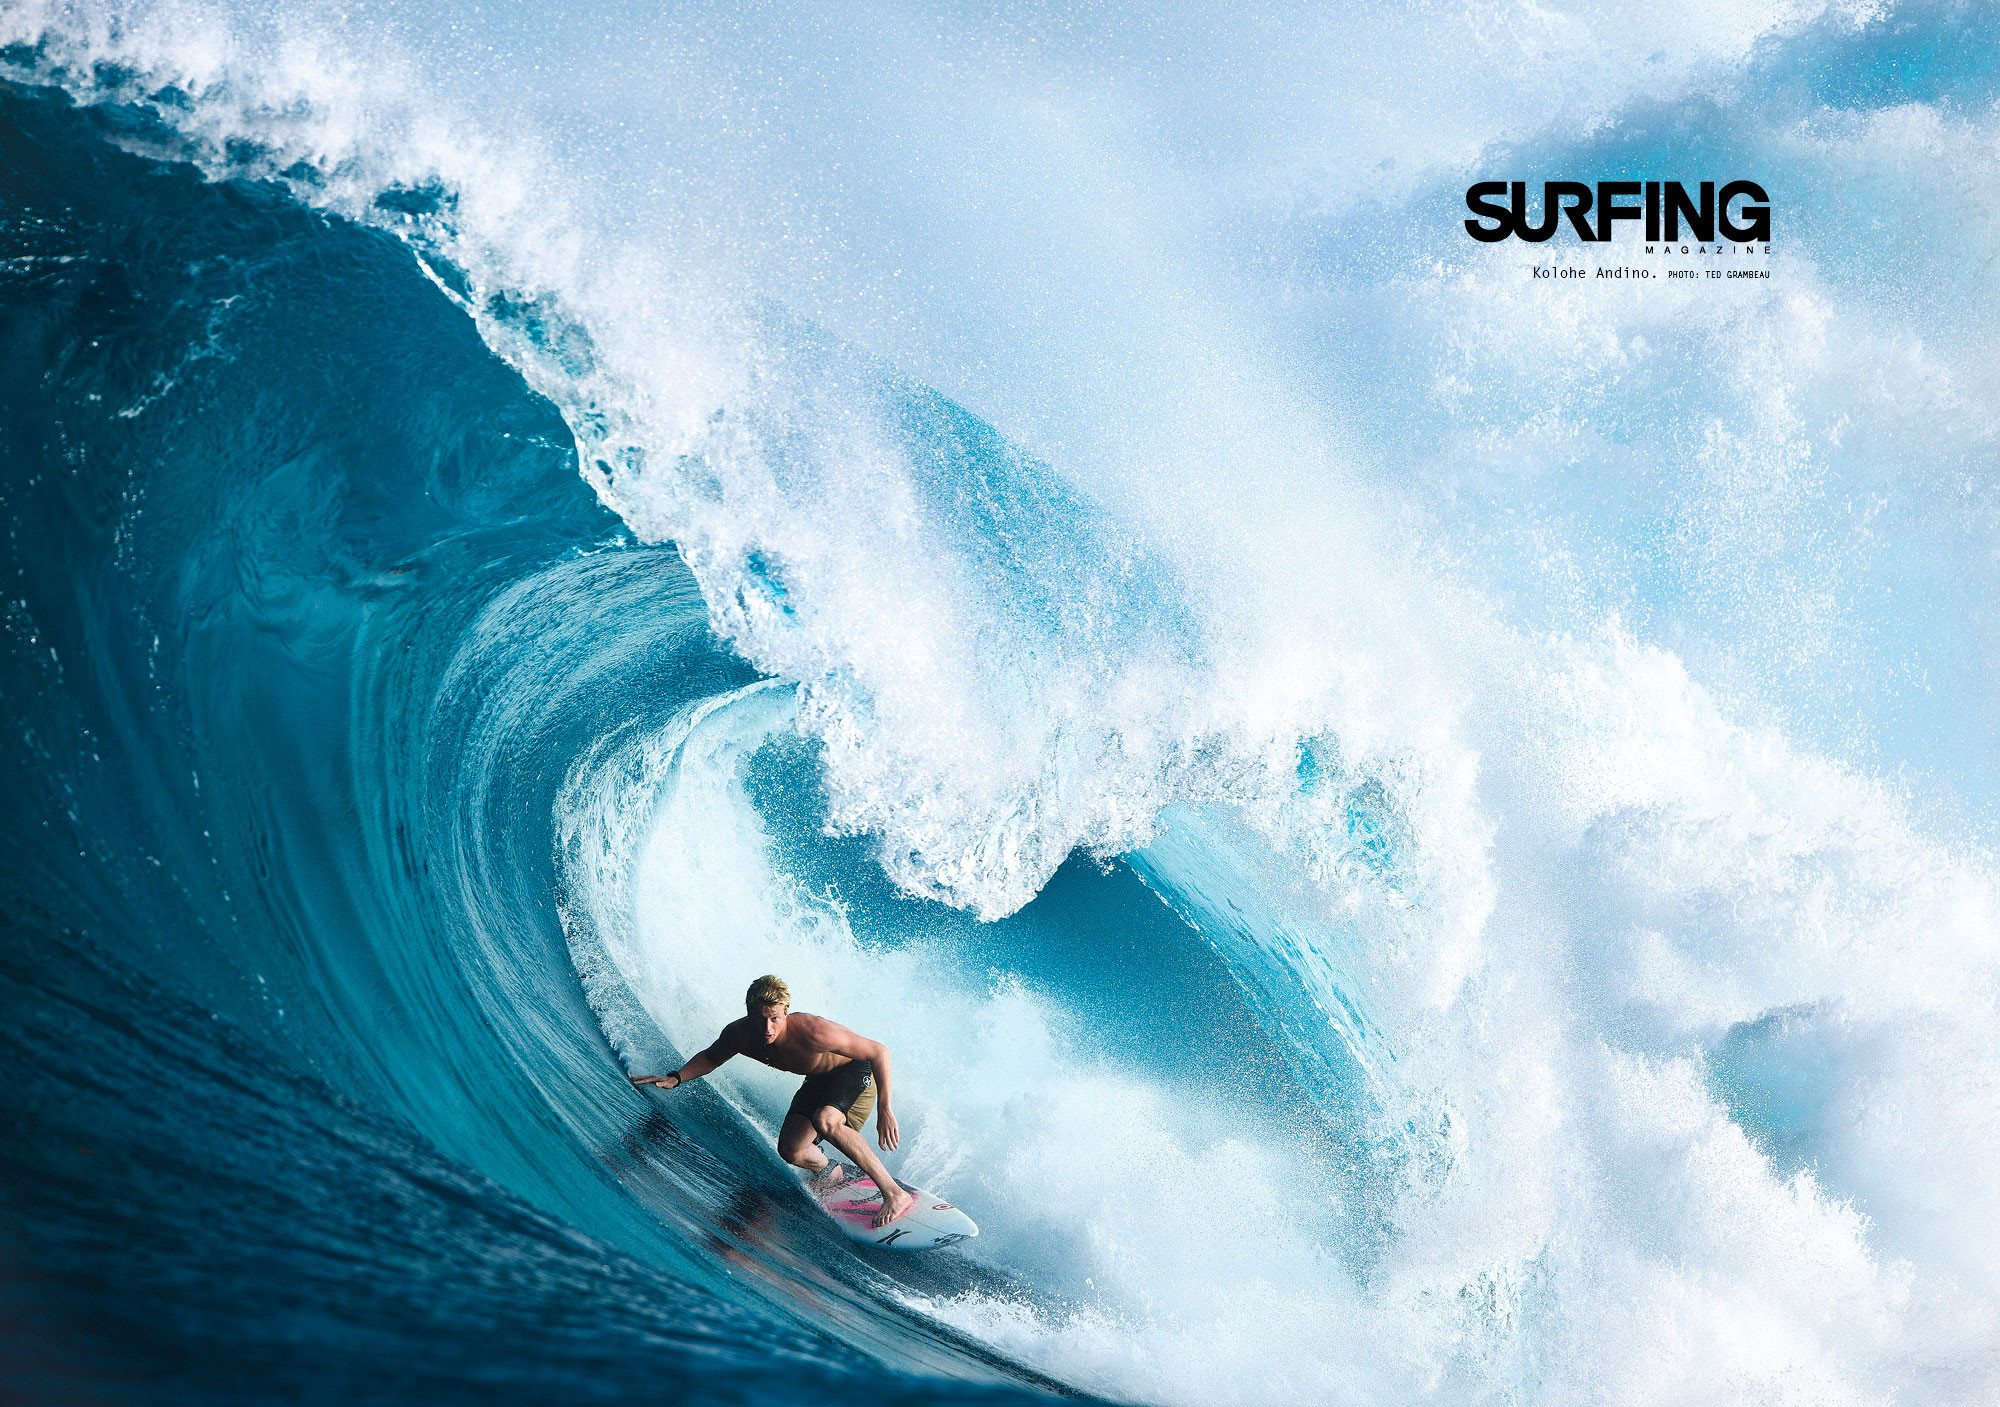 Hd Surfing Wallpaper 75 Pictures